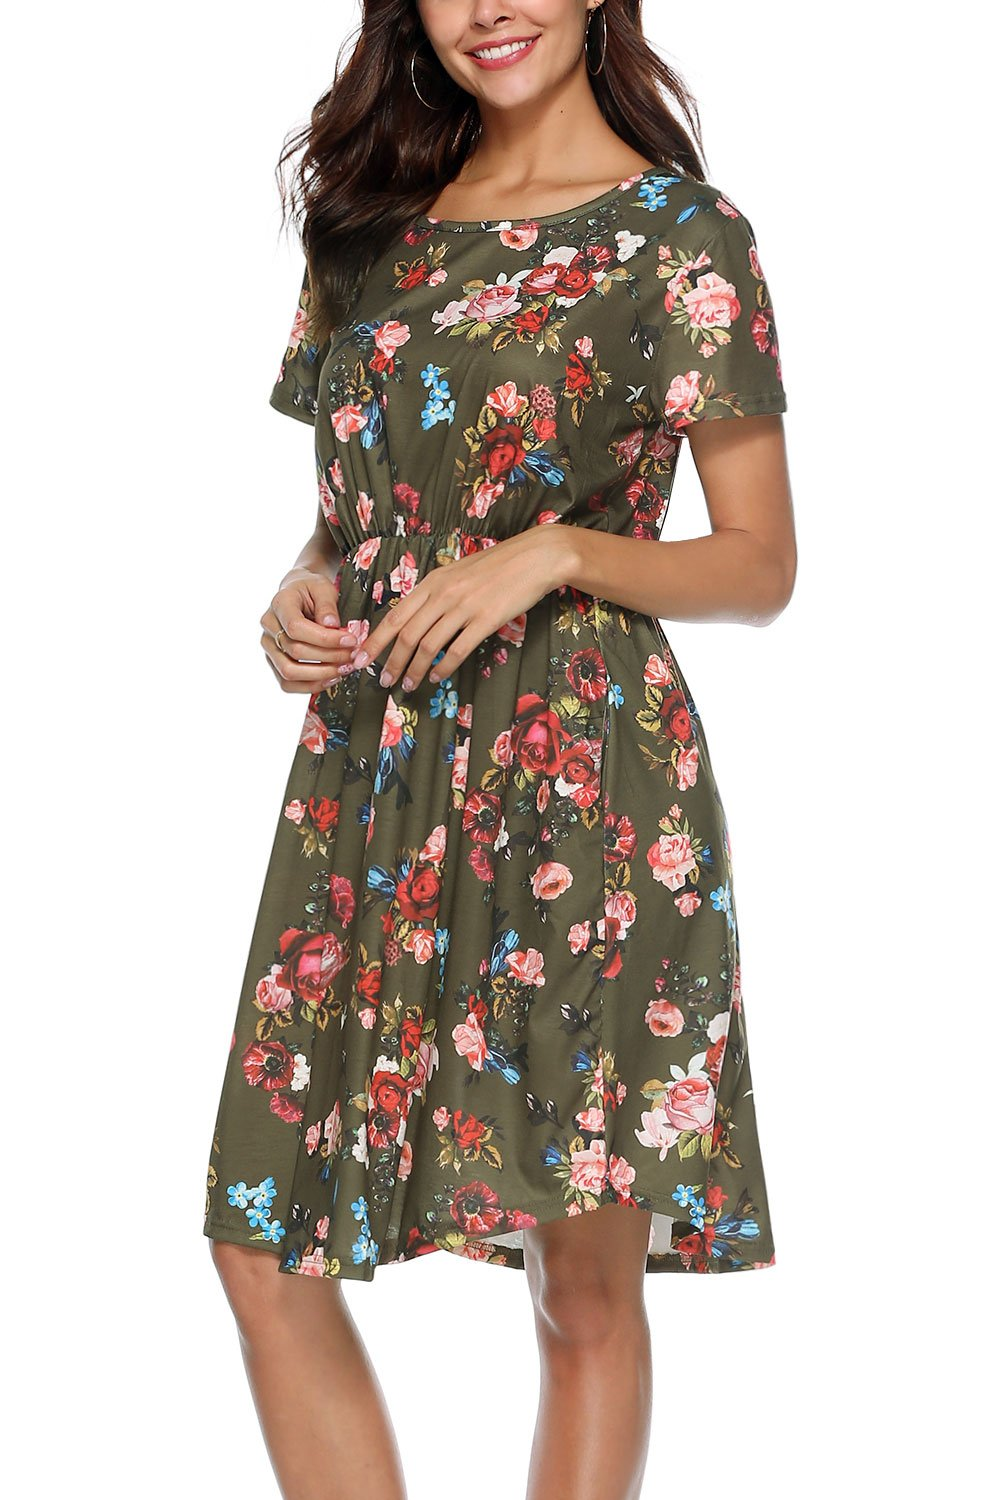 NICIAS Women Floral Short Sleeve Tunic Vintage Midi Casual Dress with Pockets Army Green L